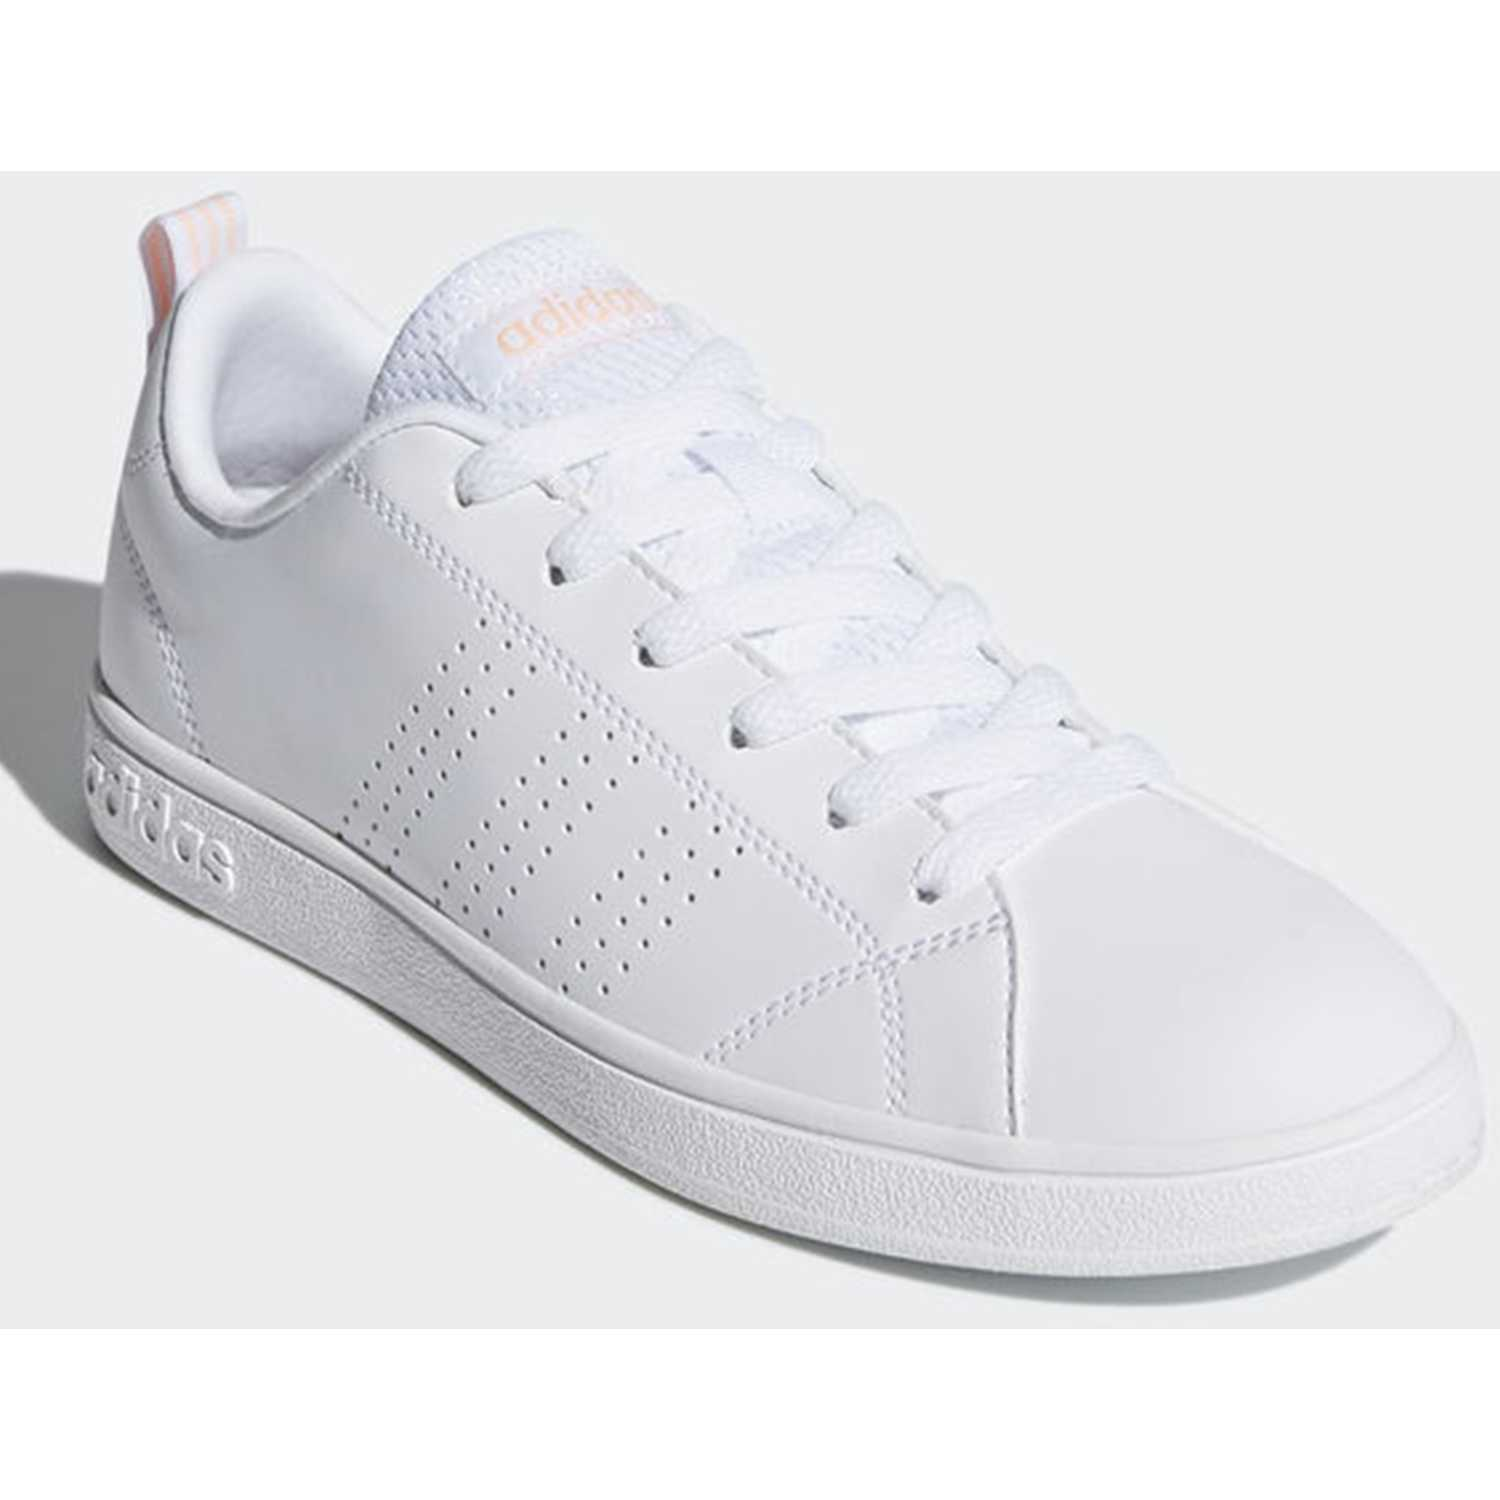 adidas NEO vs advantage cl Blanco rosado Walking